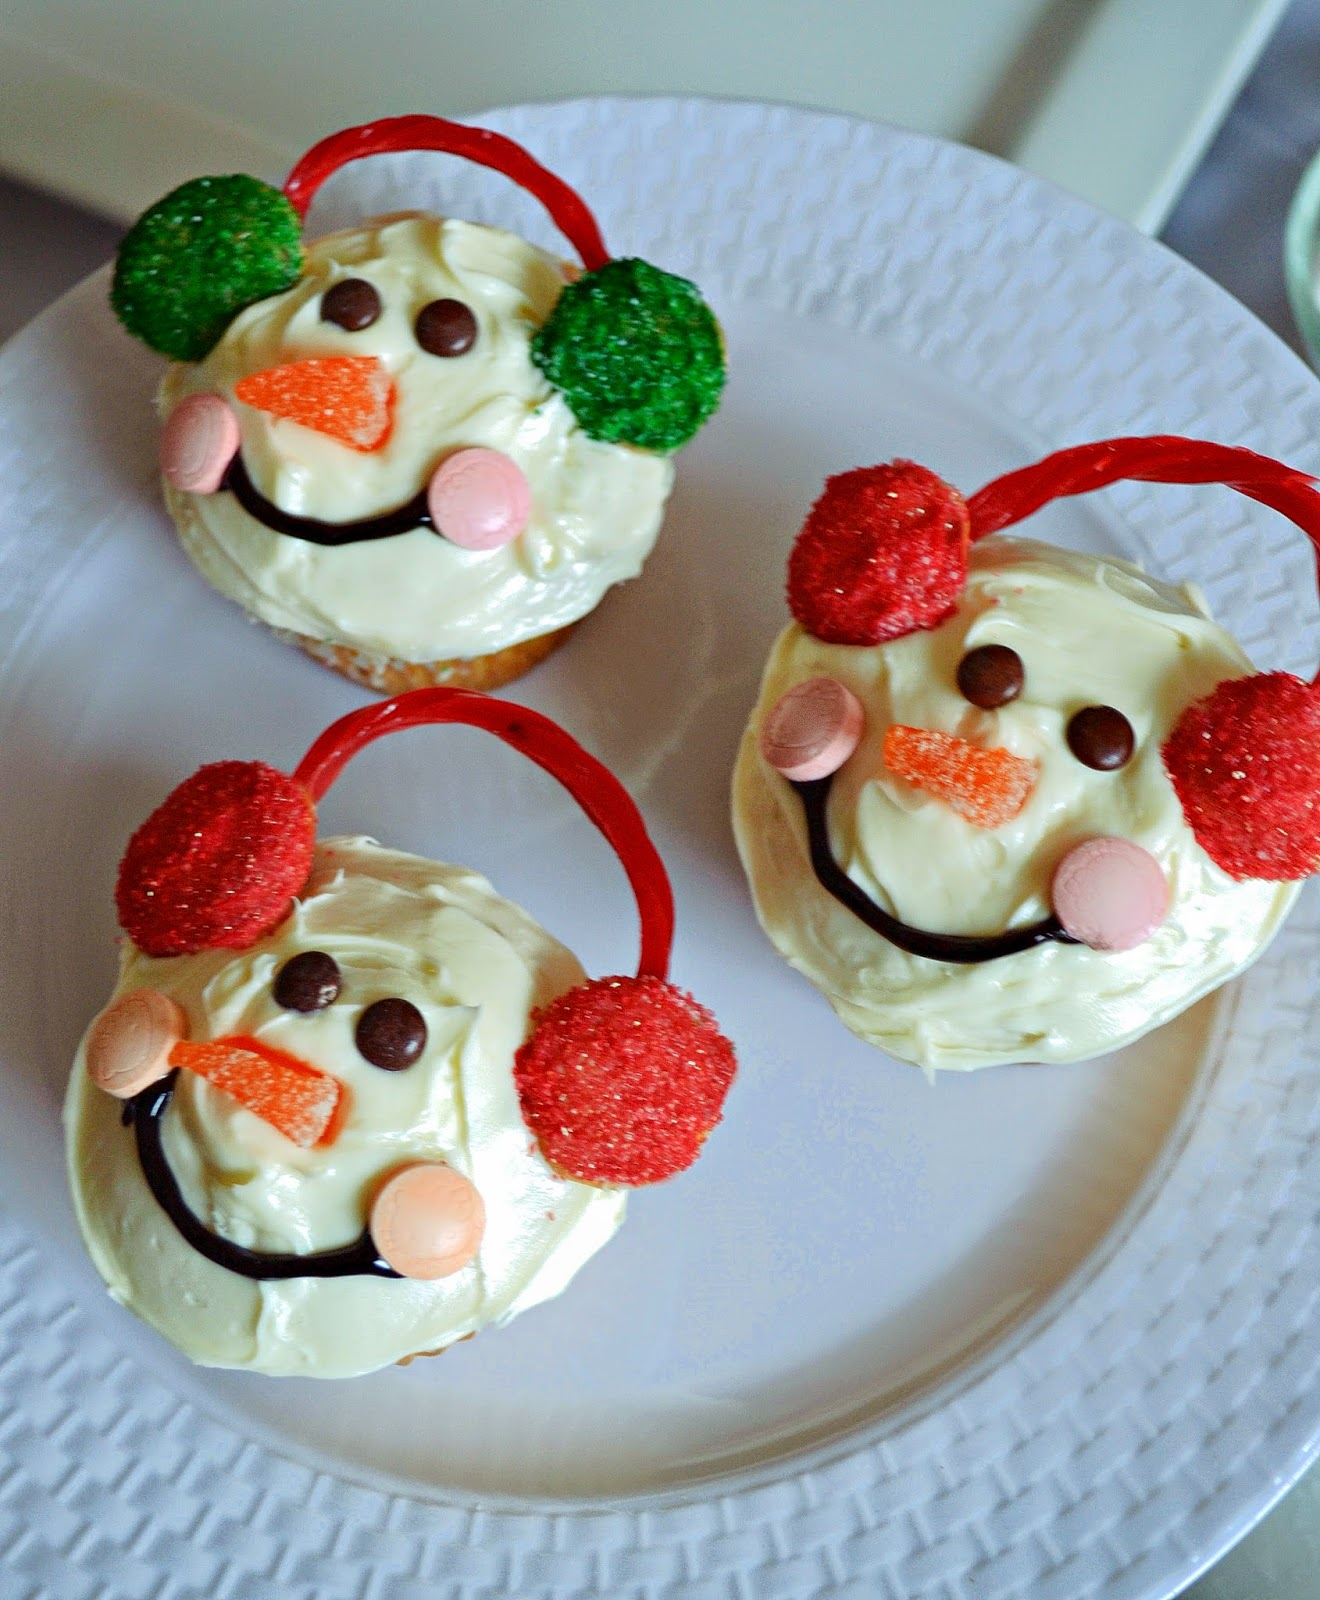 Loblaws Christmas Decorations: It's A Mom's World: Our Snowman Dinner